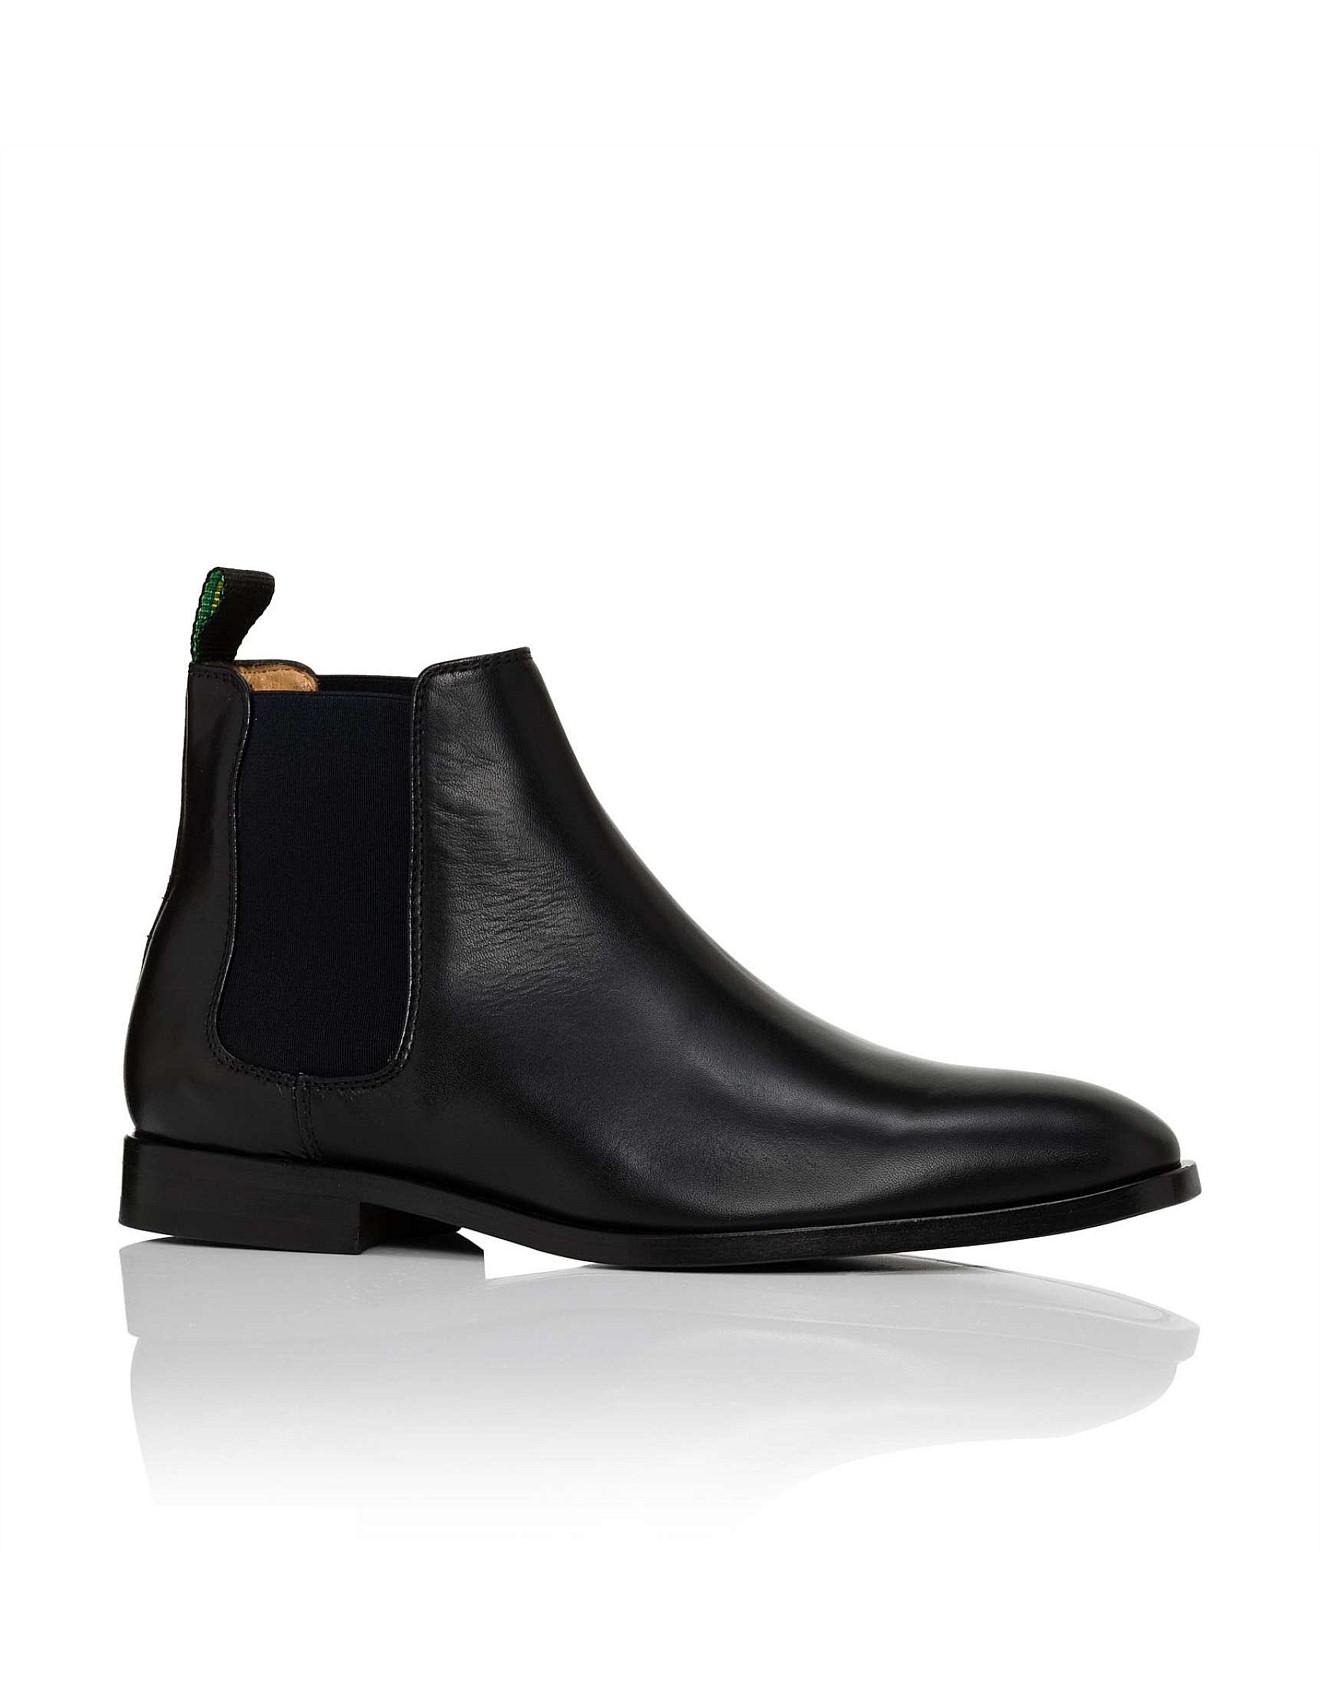 5e369a507f3 PS by Paul Smith Gerald Calf Leather Chelsea Boot in Black for Men ...